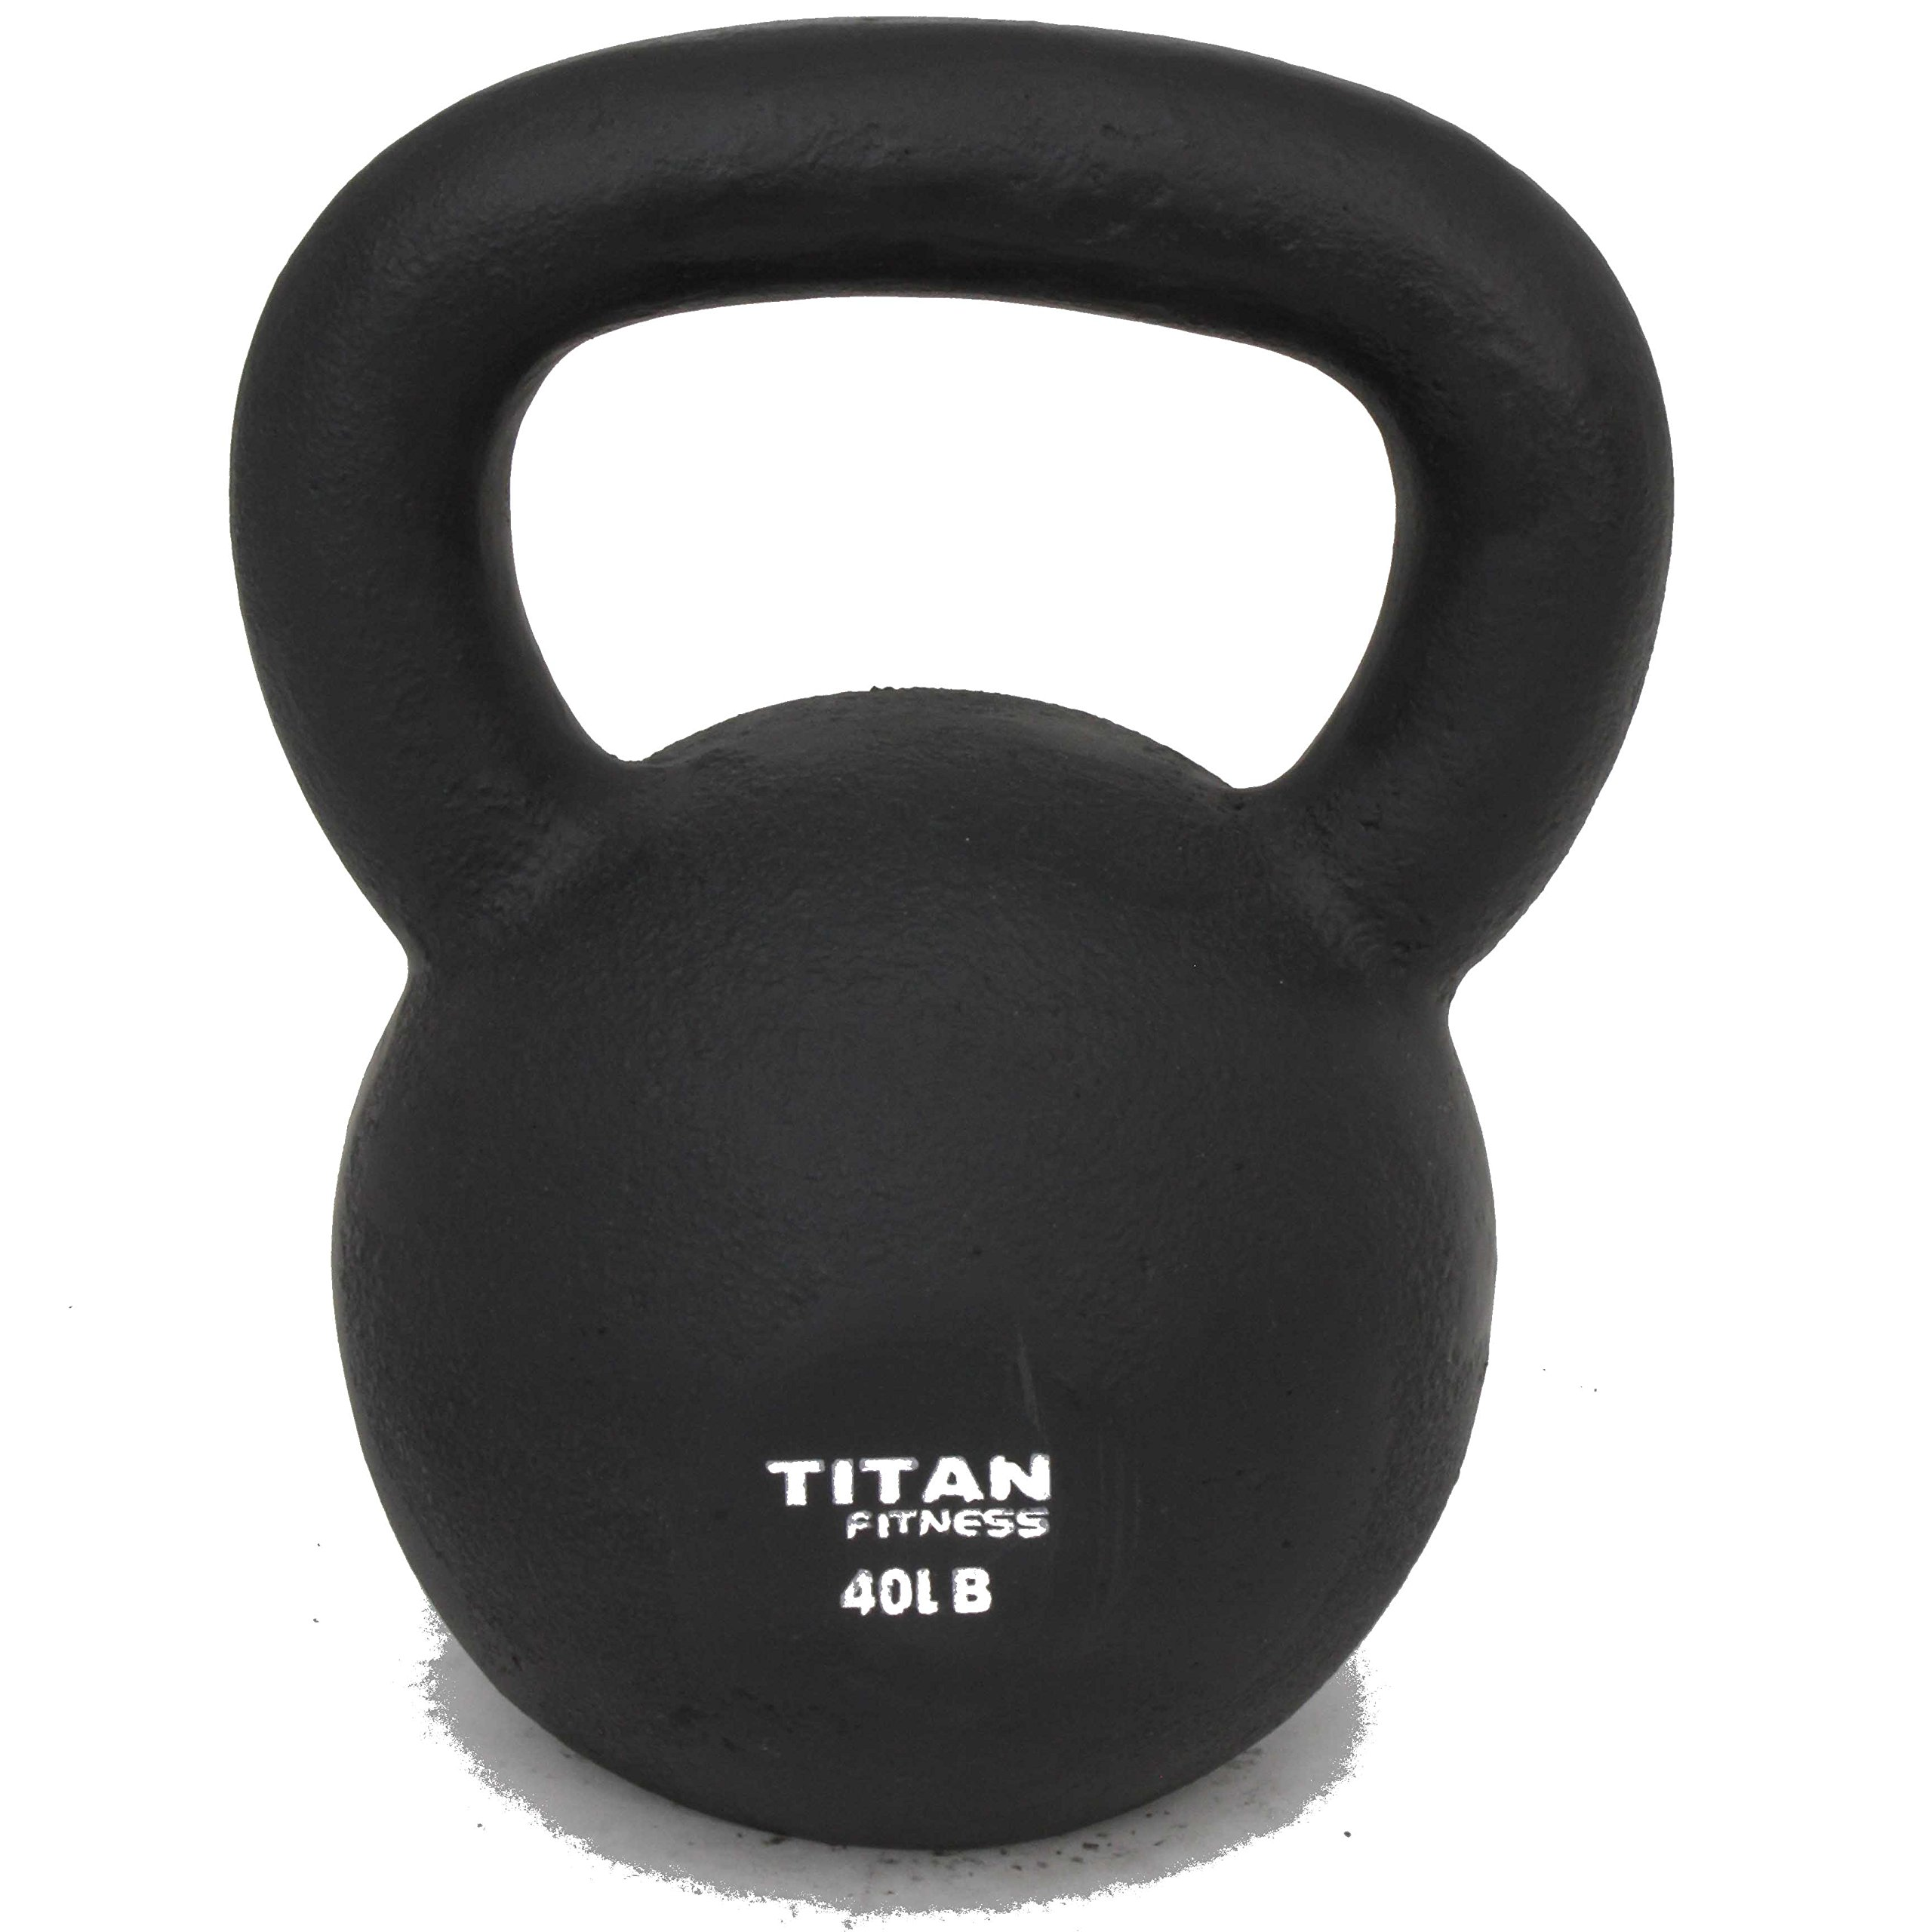 Titan Fitness Cast Iron Kettlebell Weight 40 Lbs Natural Solid Workout Swing by Titan Fitness